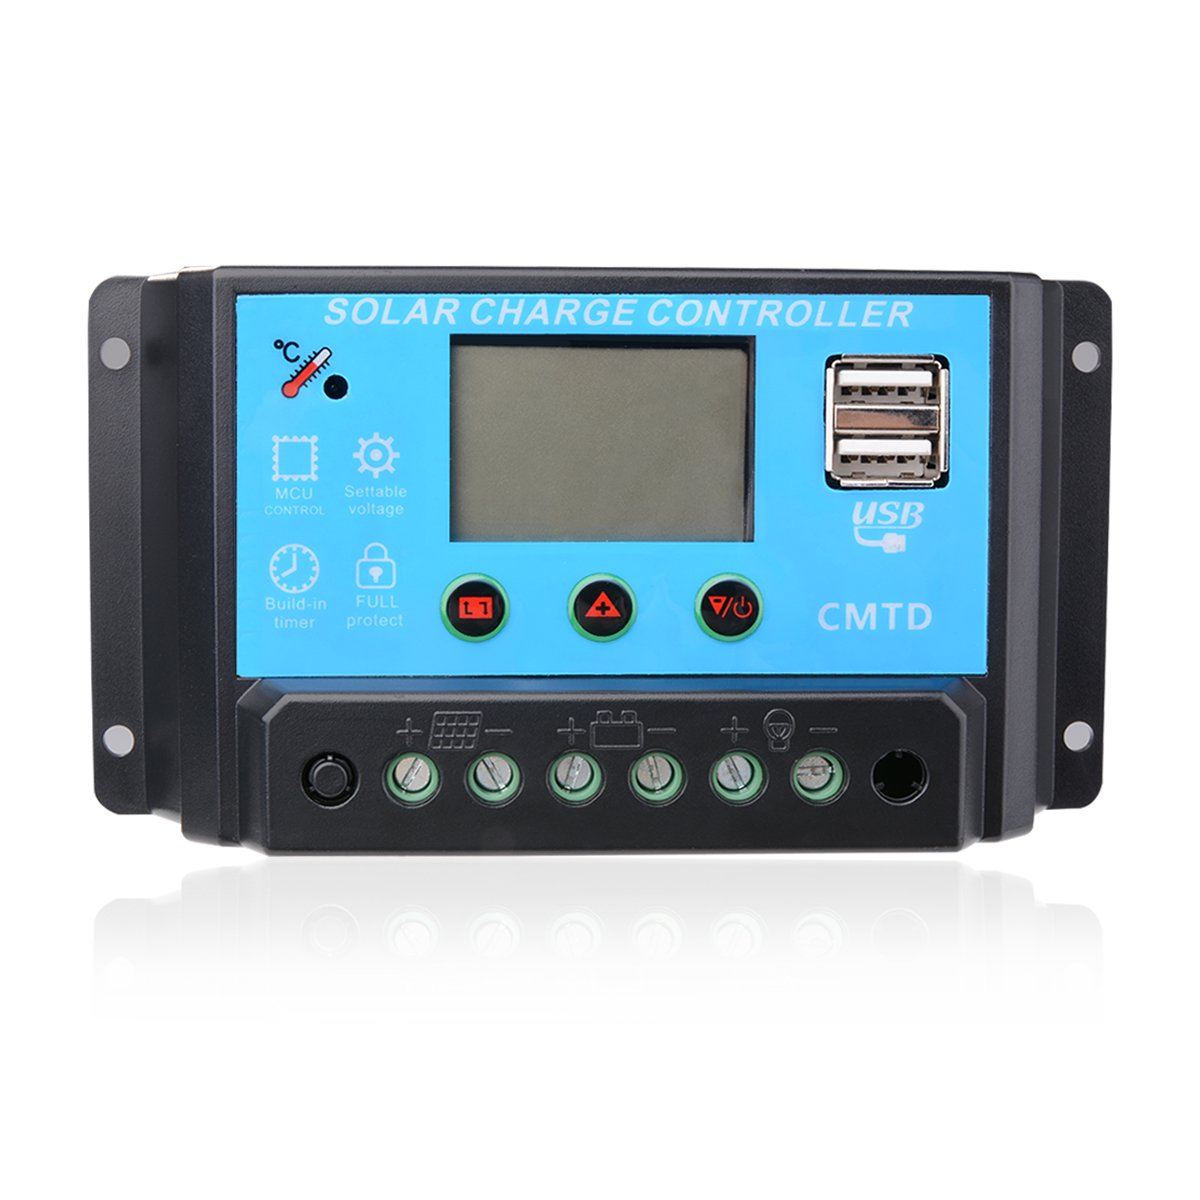 10A Solar Charge Controller Regulator Solar Panel Battery 12/24V Voltage Protection with Digital Volts Display Intelligent Solar Generators Starter Kit for Overload Protection Home Solar Systems